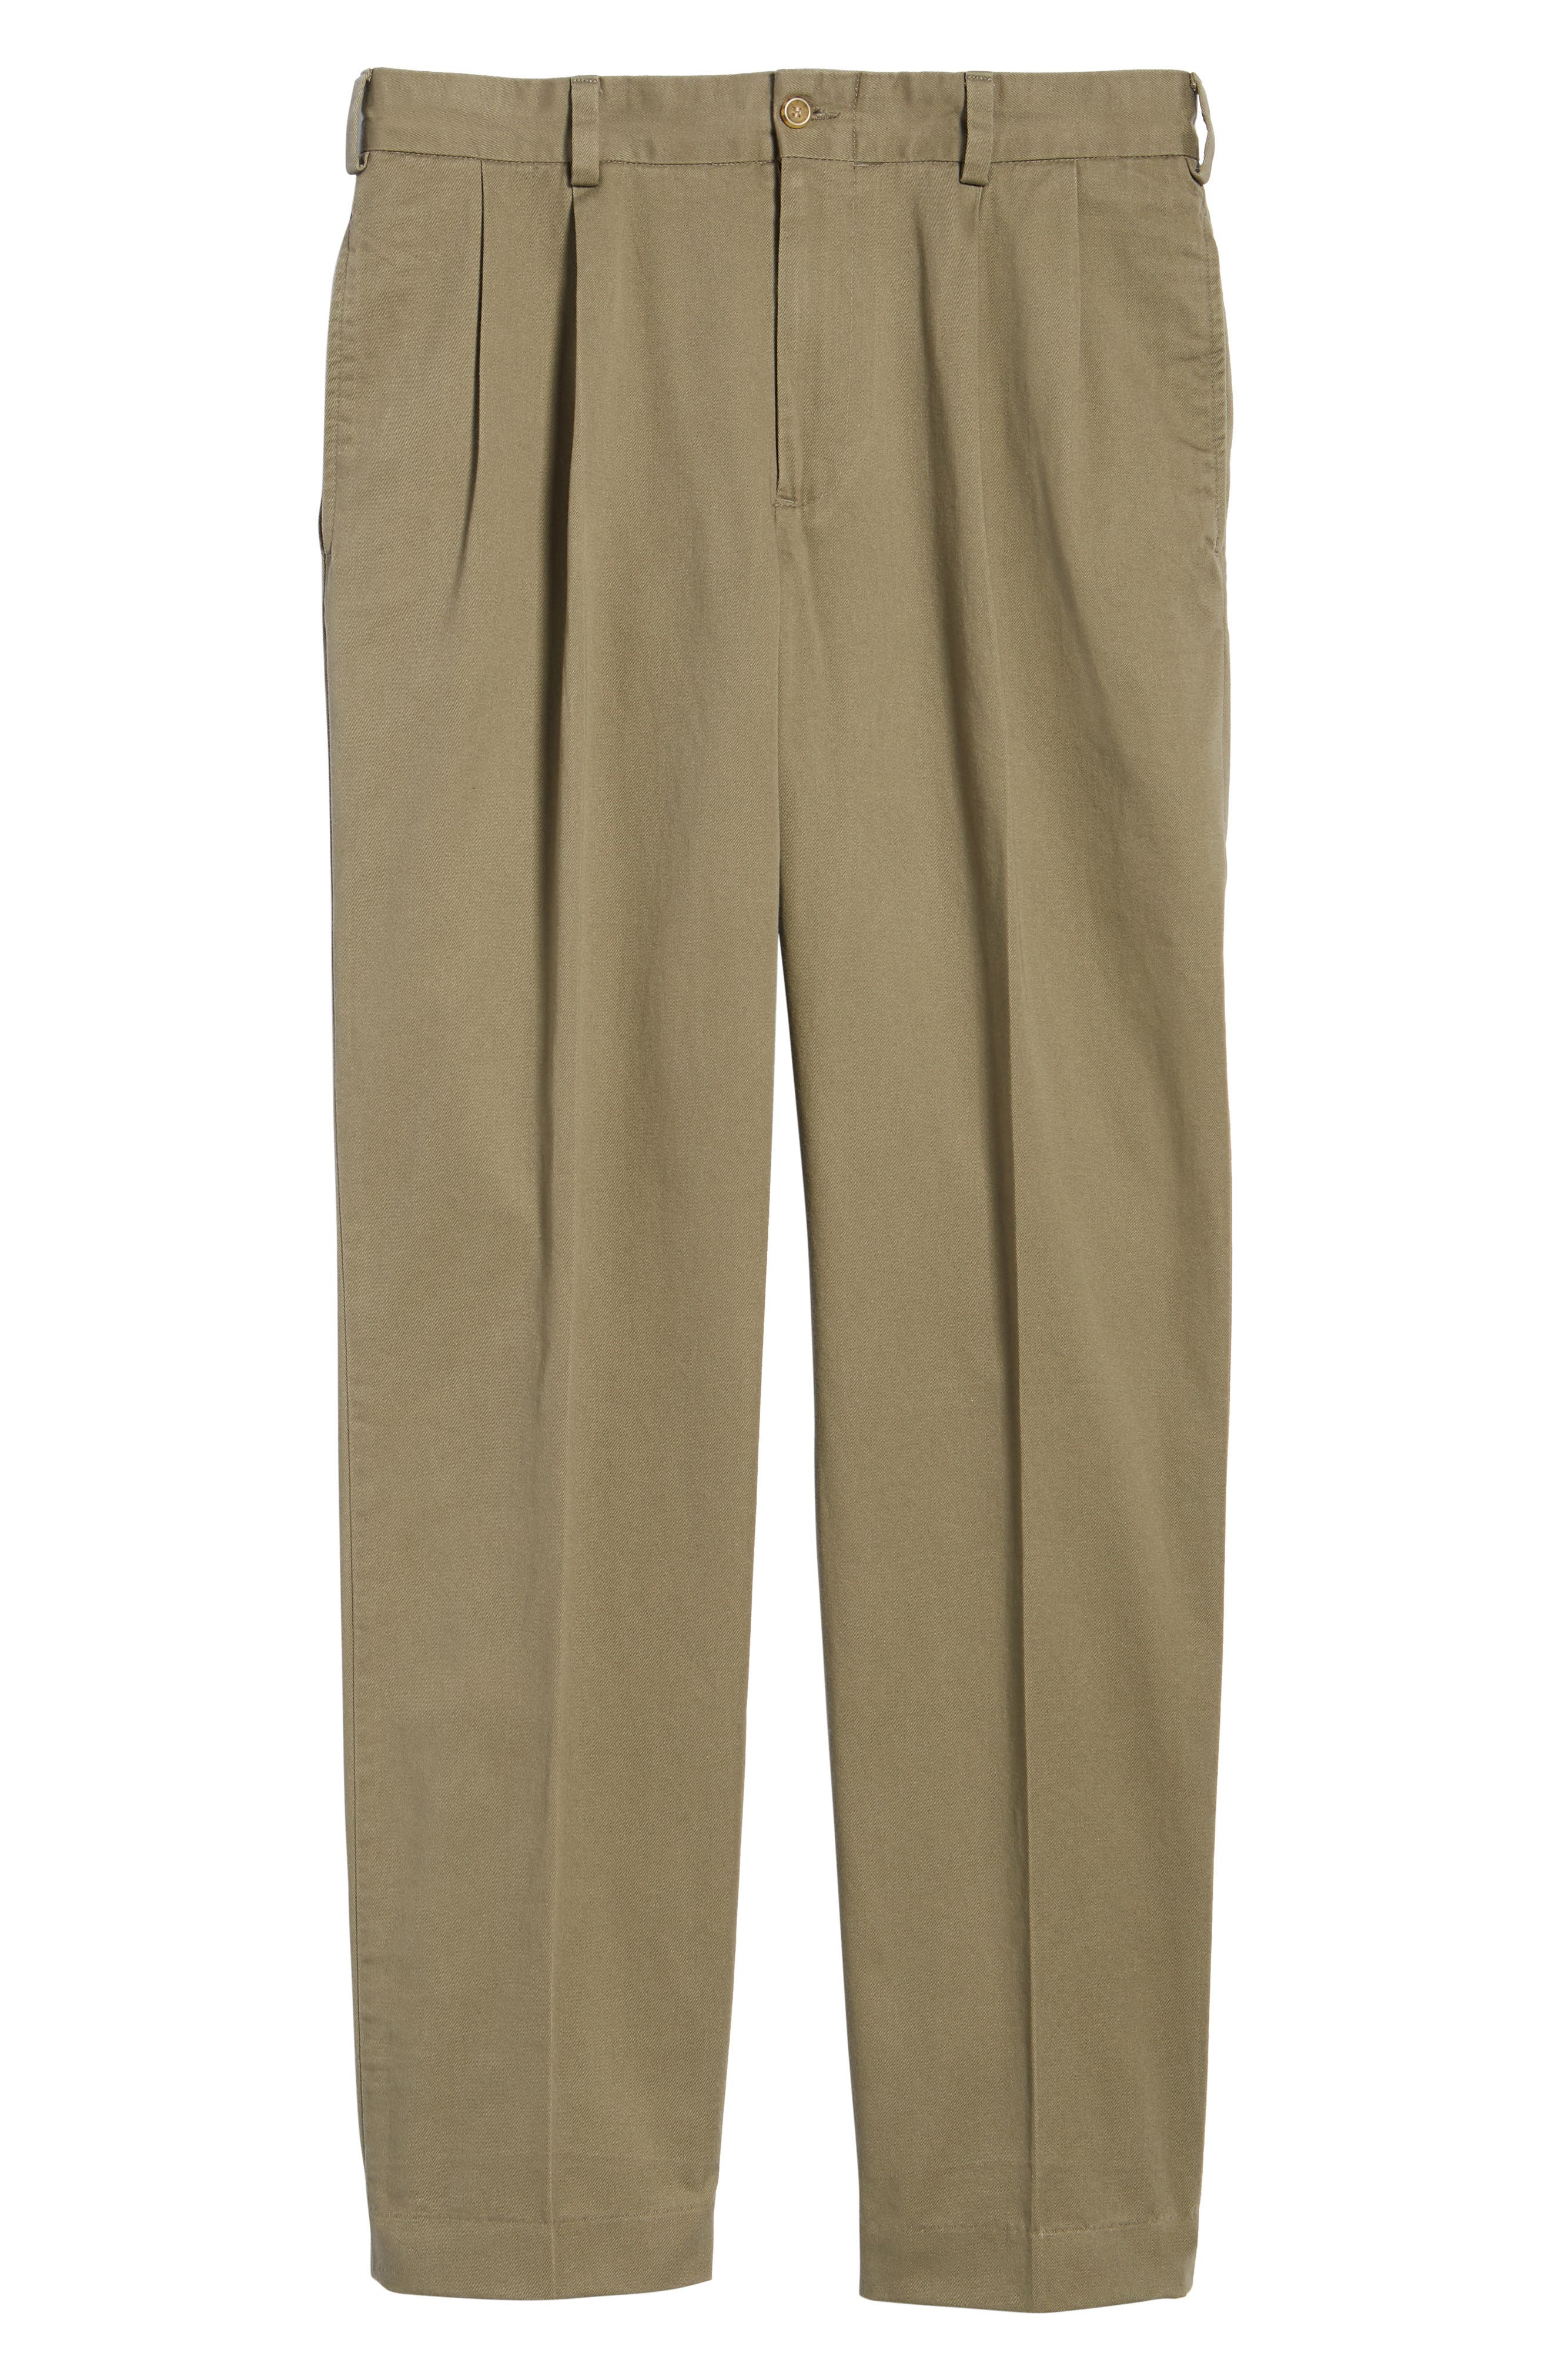 M2 Classic Fit Vintage Twill Pleated Pants,                             Alternate thumbnail 6, color,                             Olive